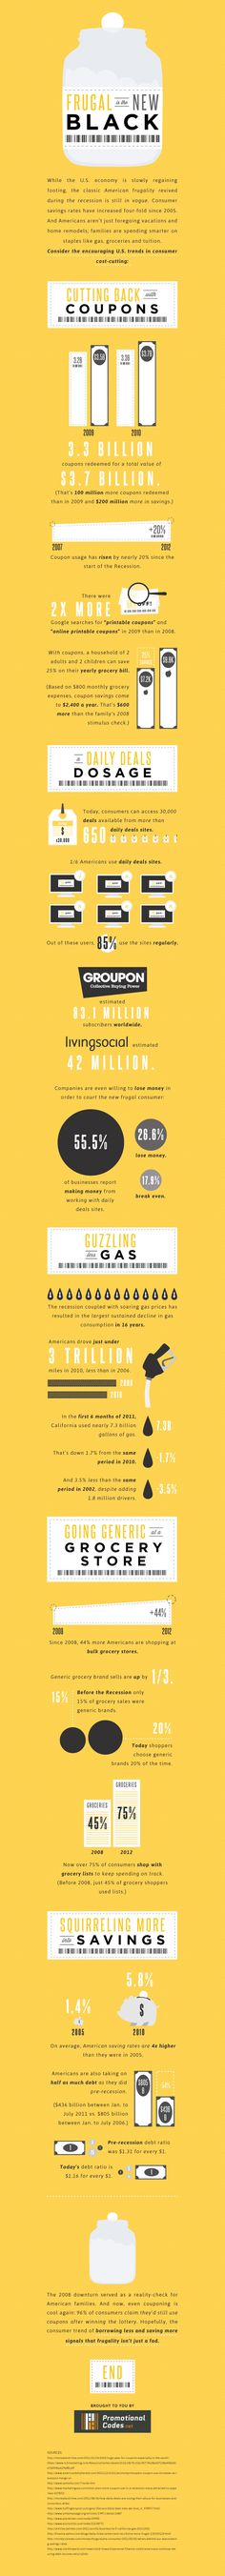 """Is Frugal """"The New Black""""? - NFOGRAPHIC"""